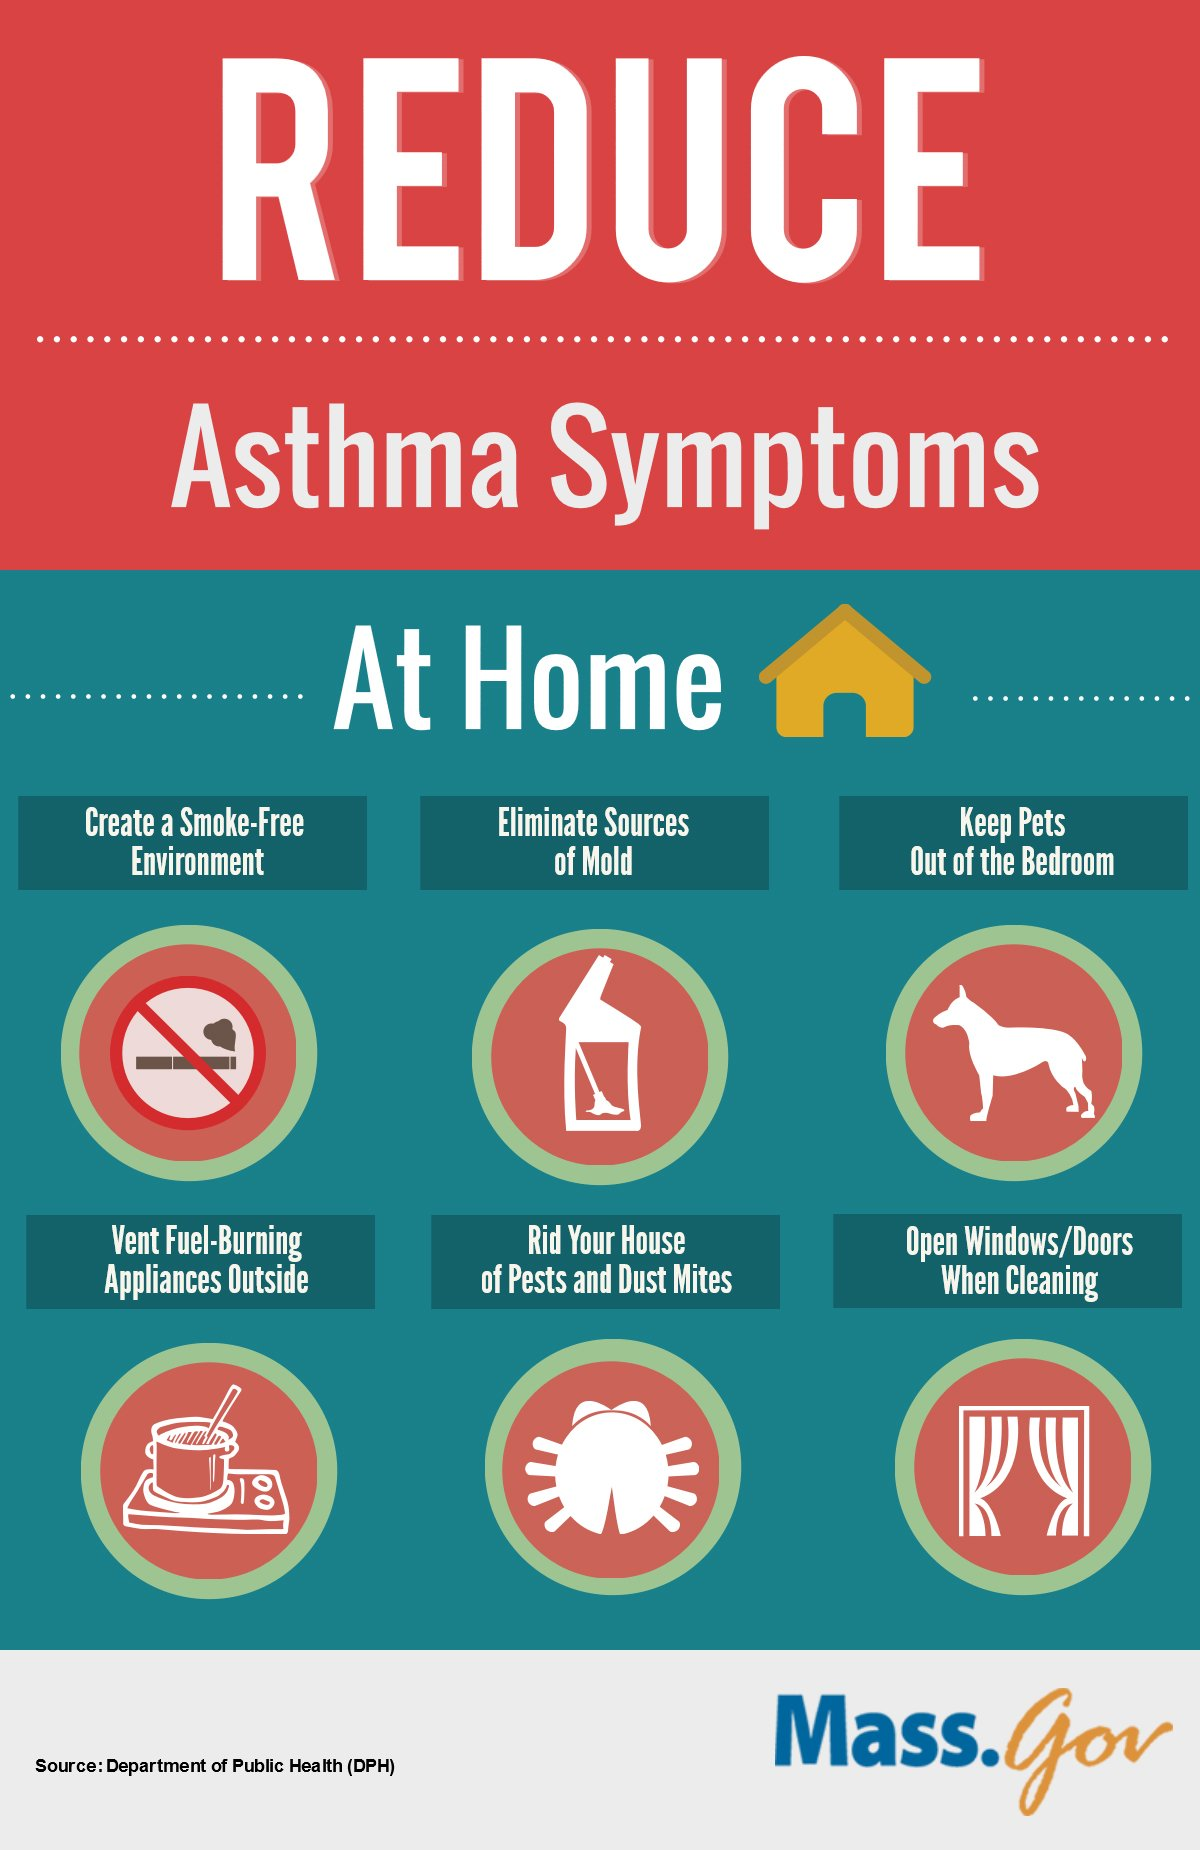 How To Control Asthma?